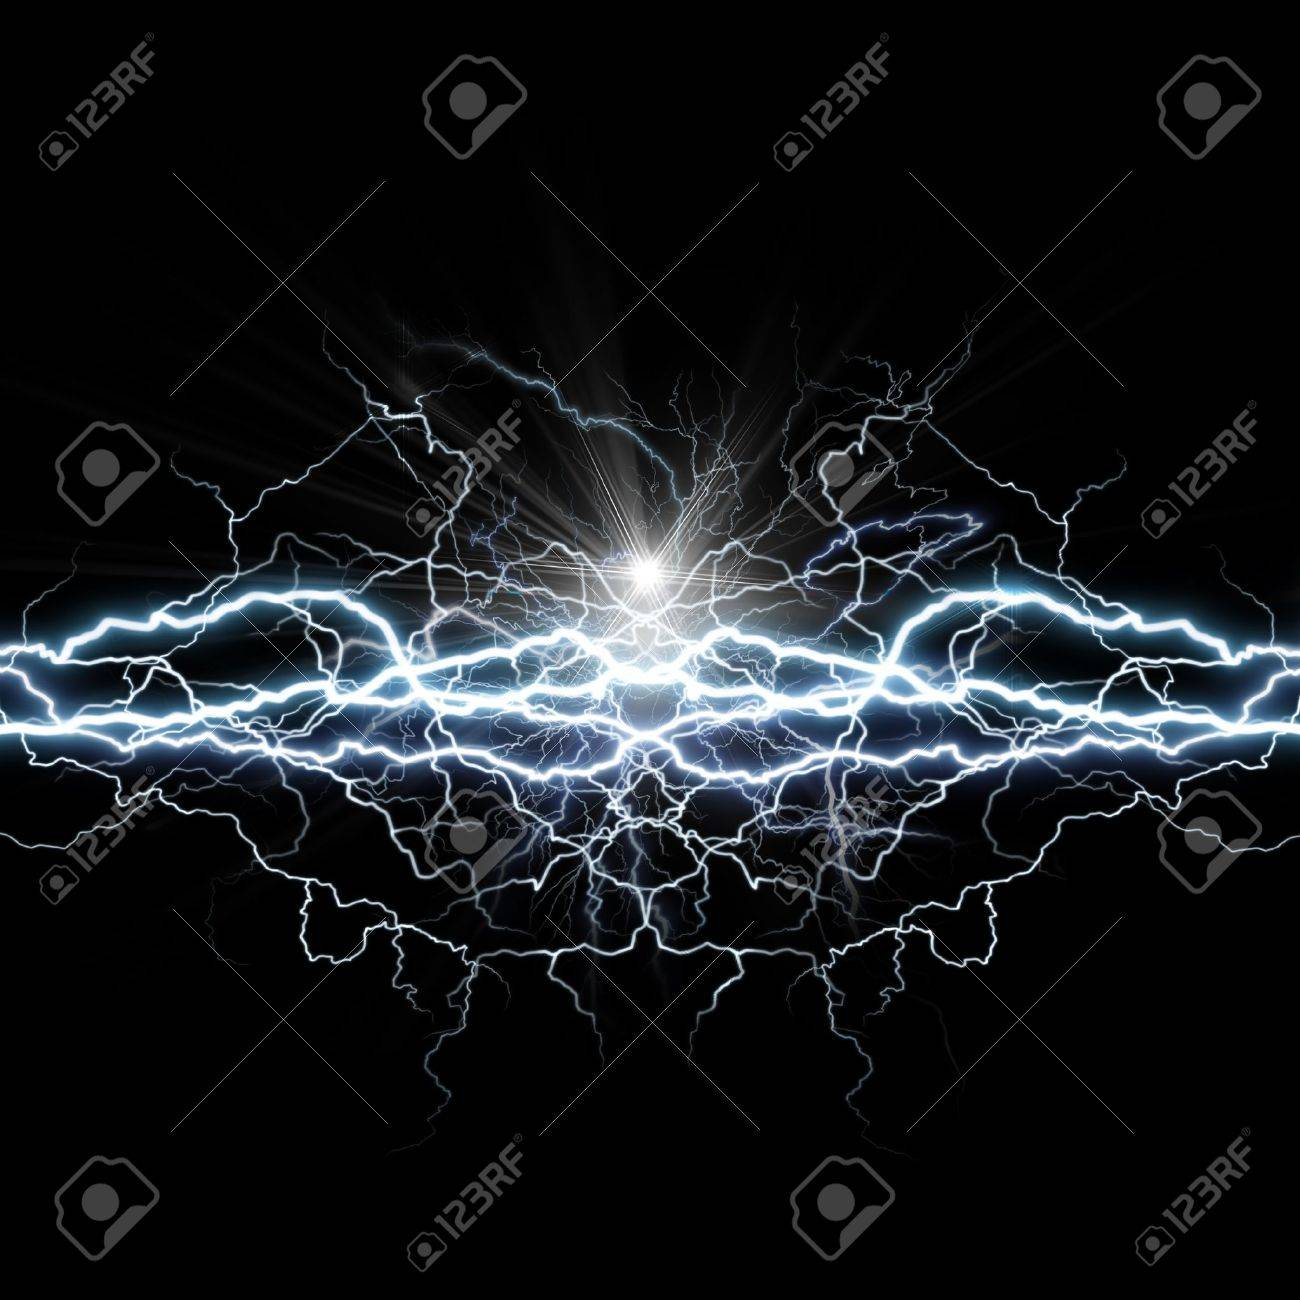 Power of light. Abstract environmental backgrounds - 18702155